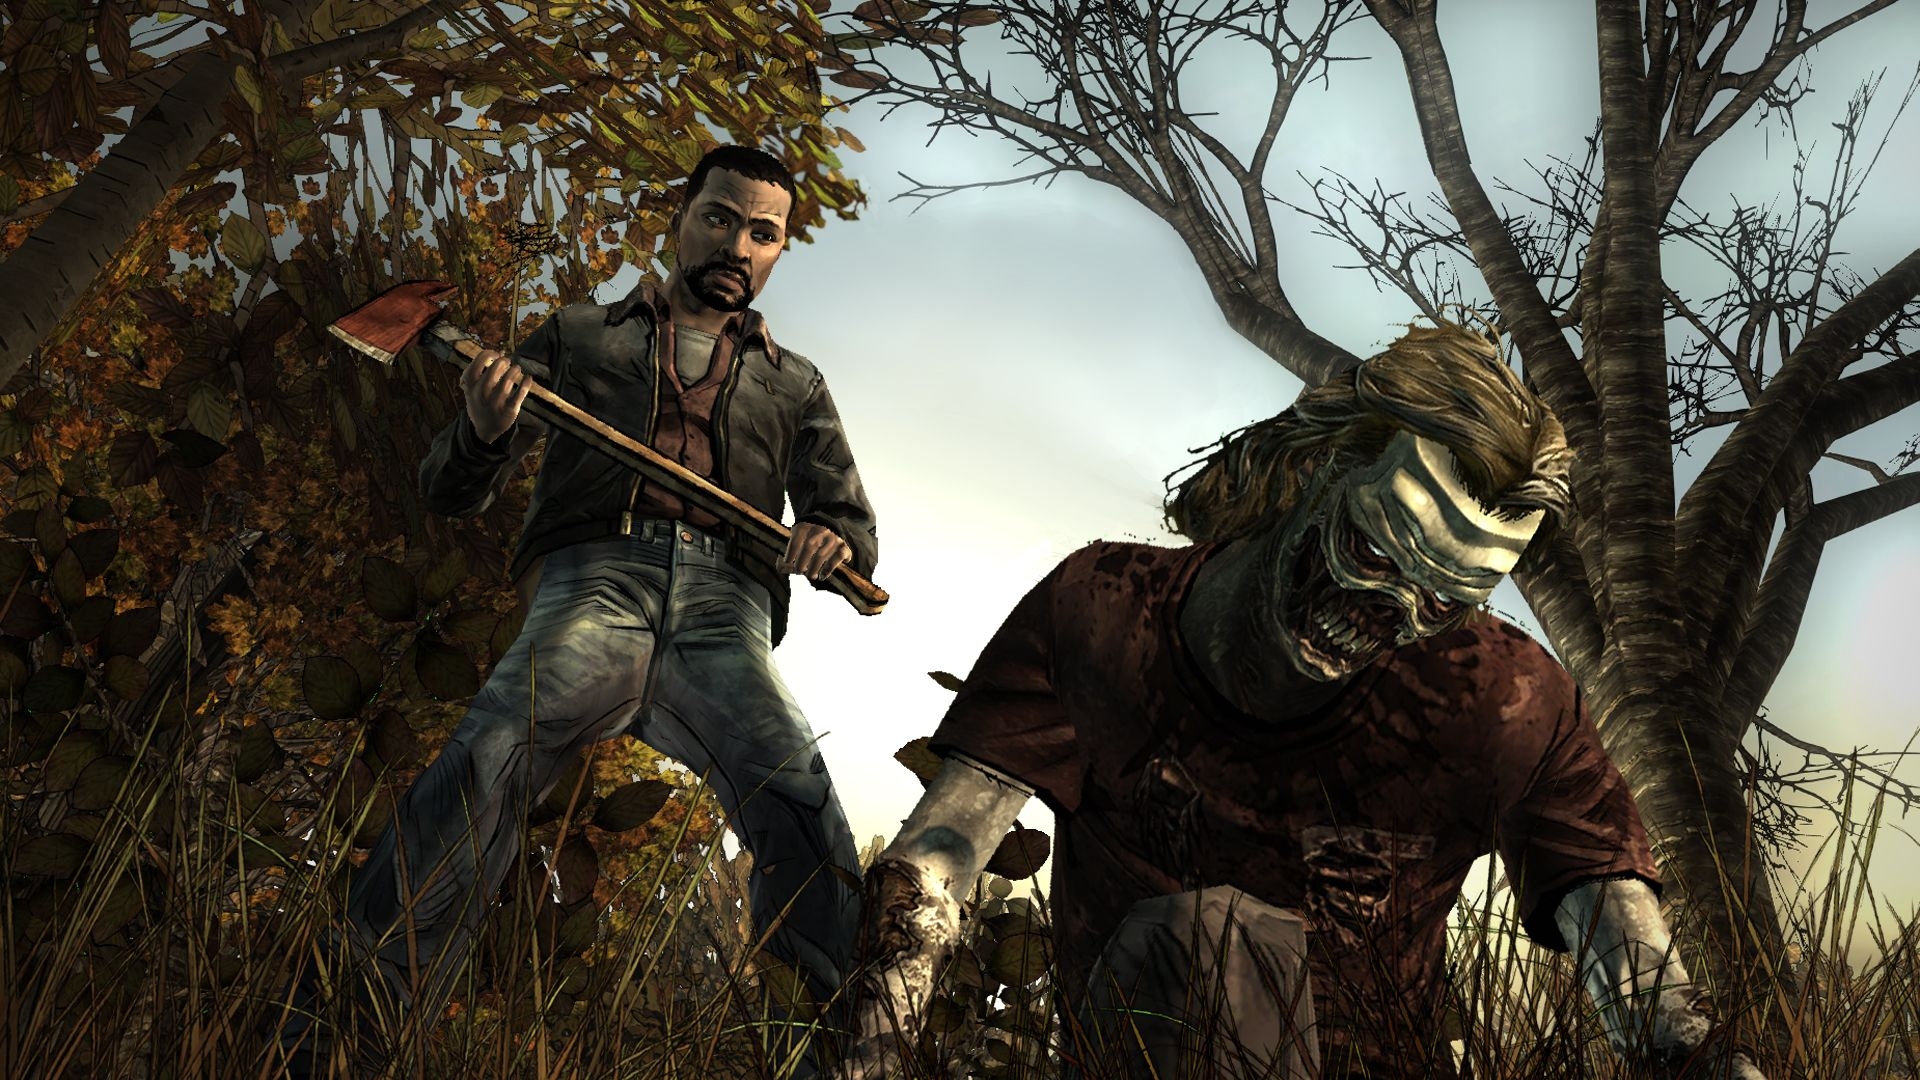 f069f71e43d76d7a193639b302b88c7b - How To Get Episode 2 On The Walking Dead Game